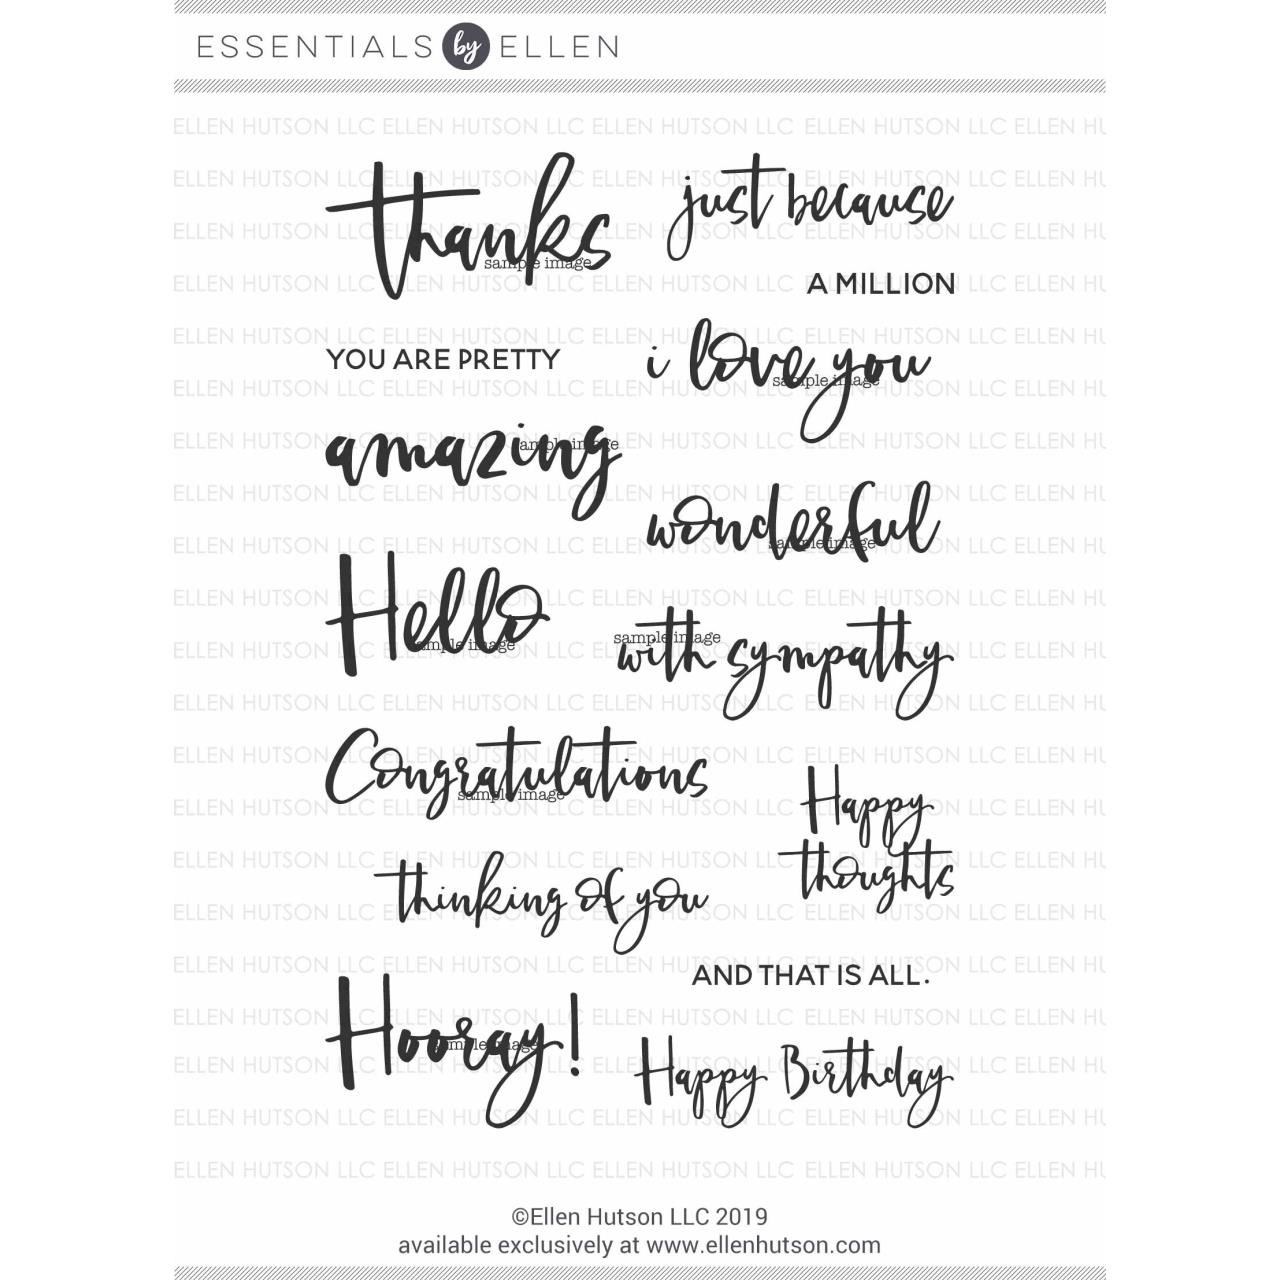 Totally Random Sayings Vol. 3 by Julie Ebersole, Essentials by Ellen Clear Stamps -